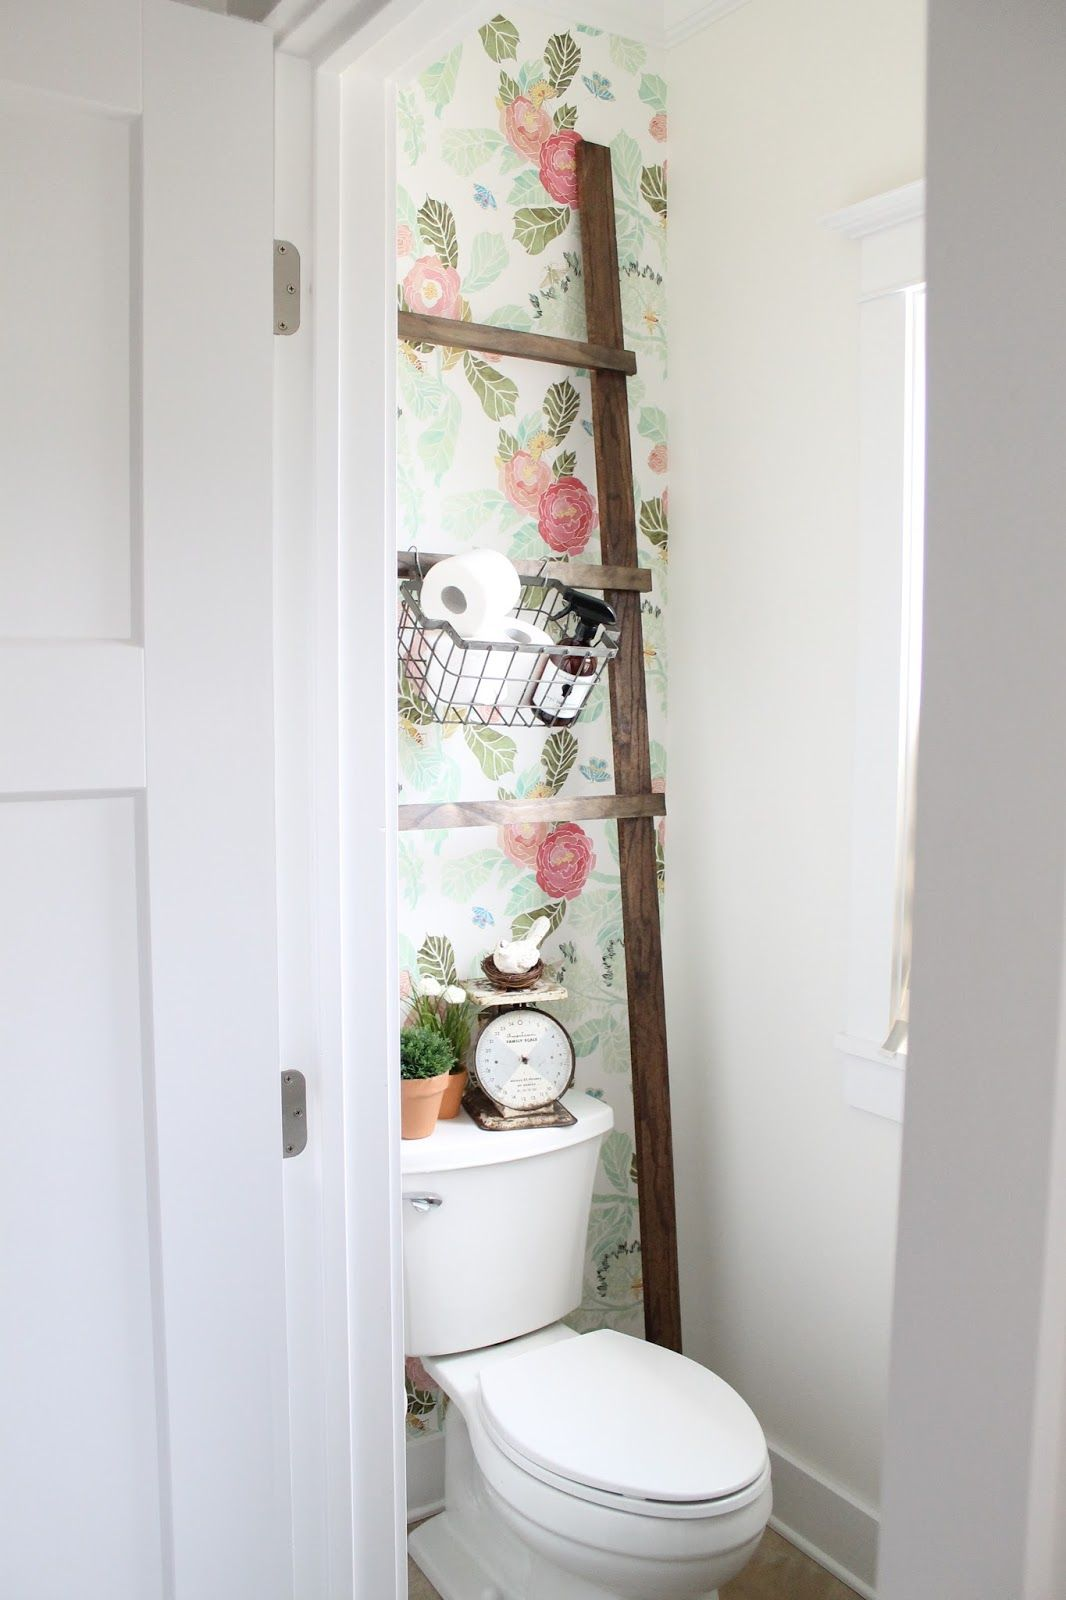 Bath ladder storage design make your bathroom more cute and cool - 26 Half Bathroom Ideas And Design For Upgrade Your House